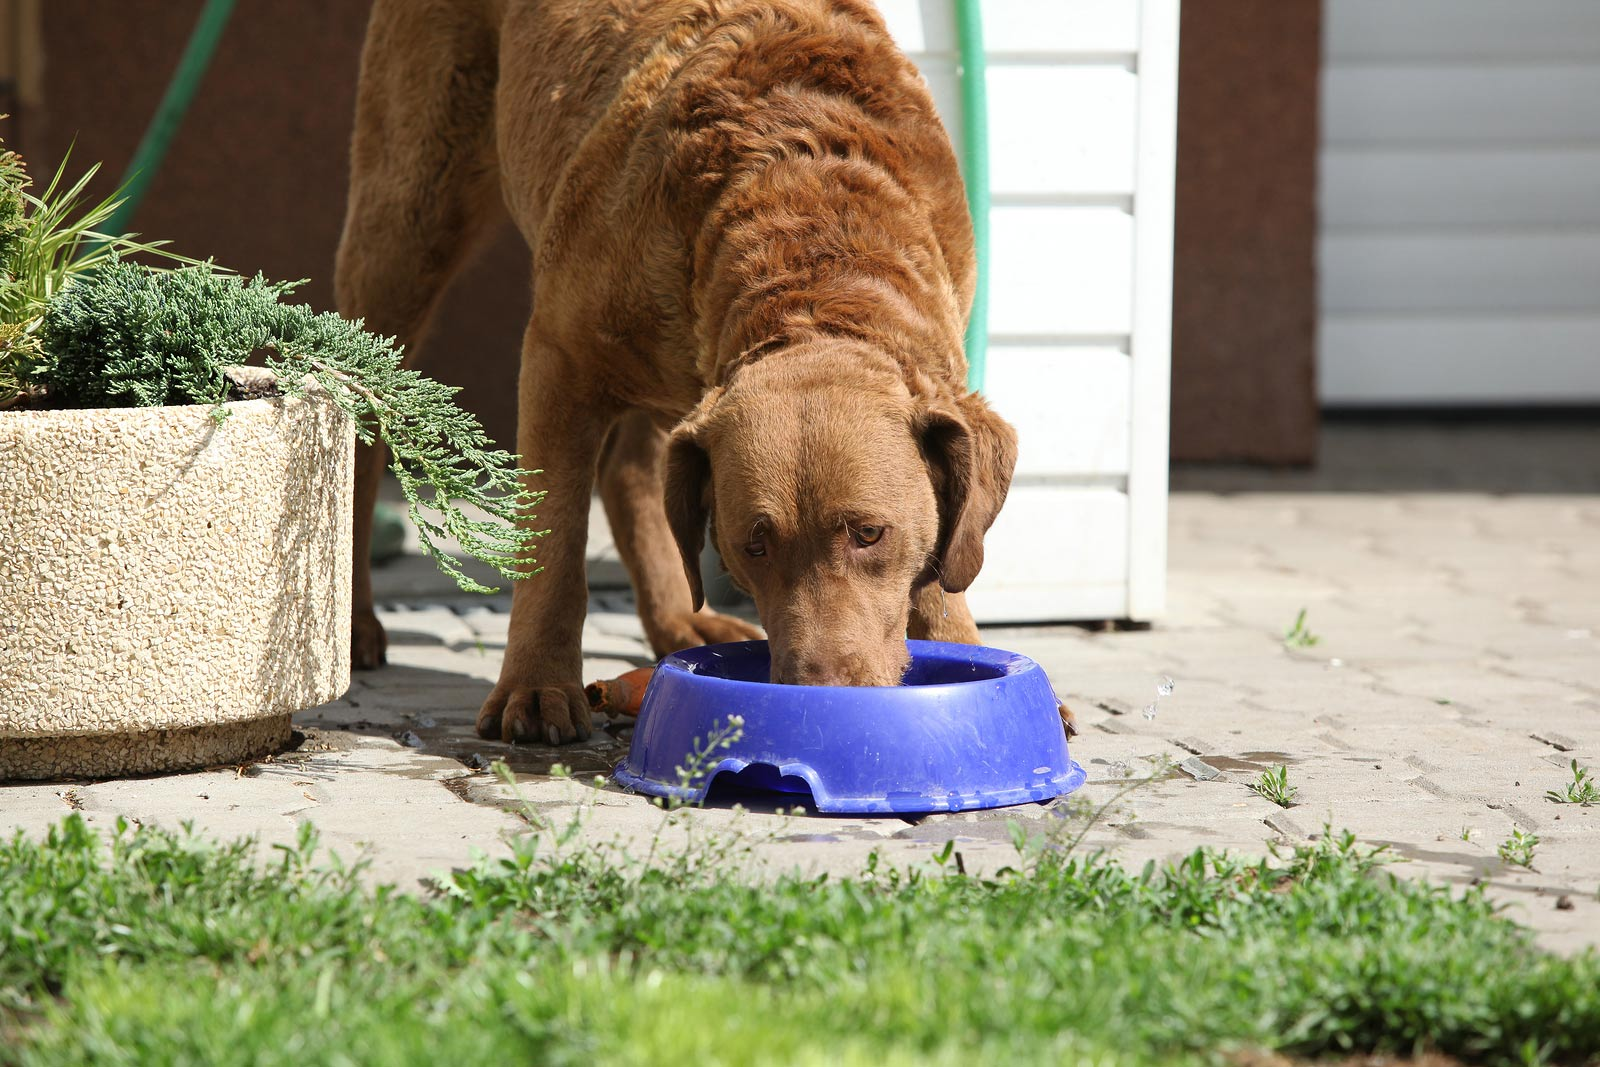 Brown dog eating food out of a blue bowl in the backyard.